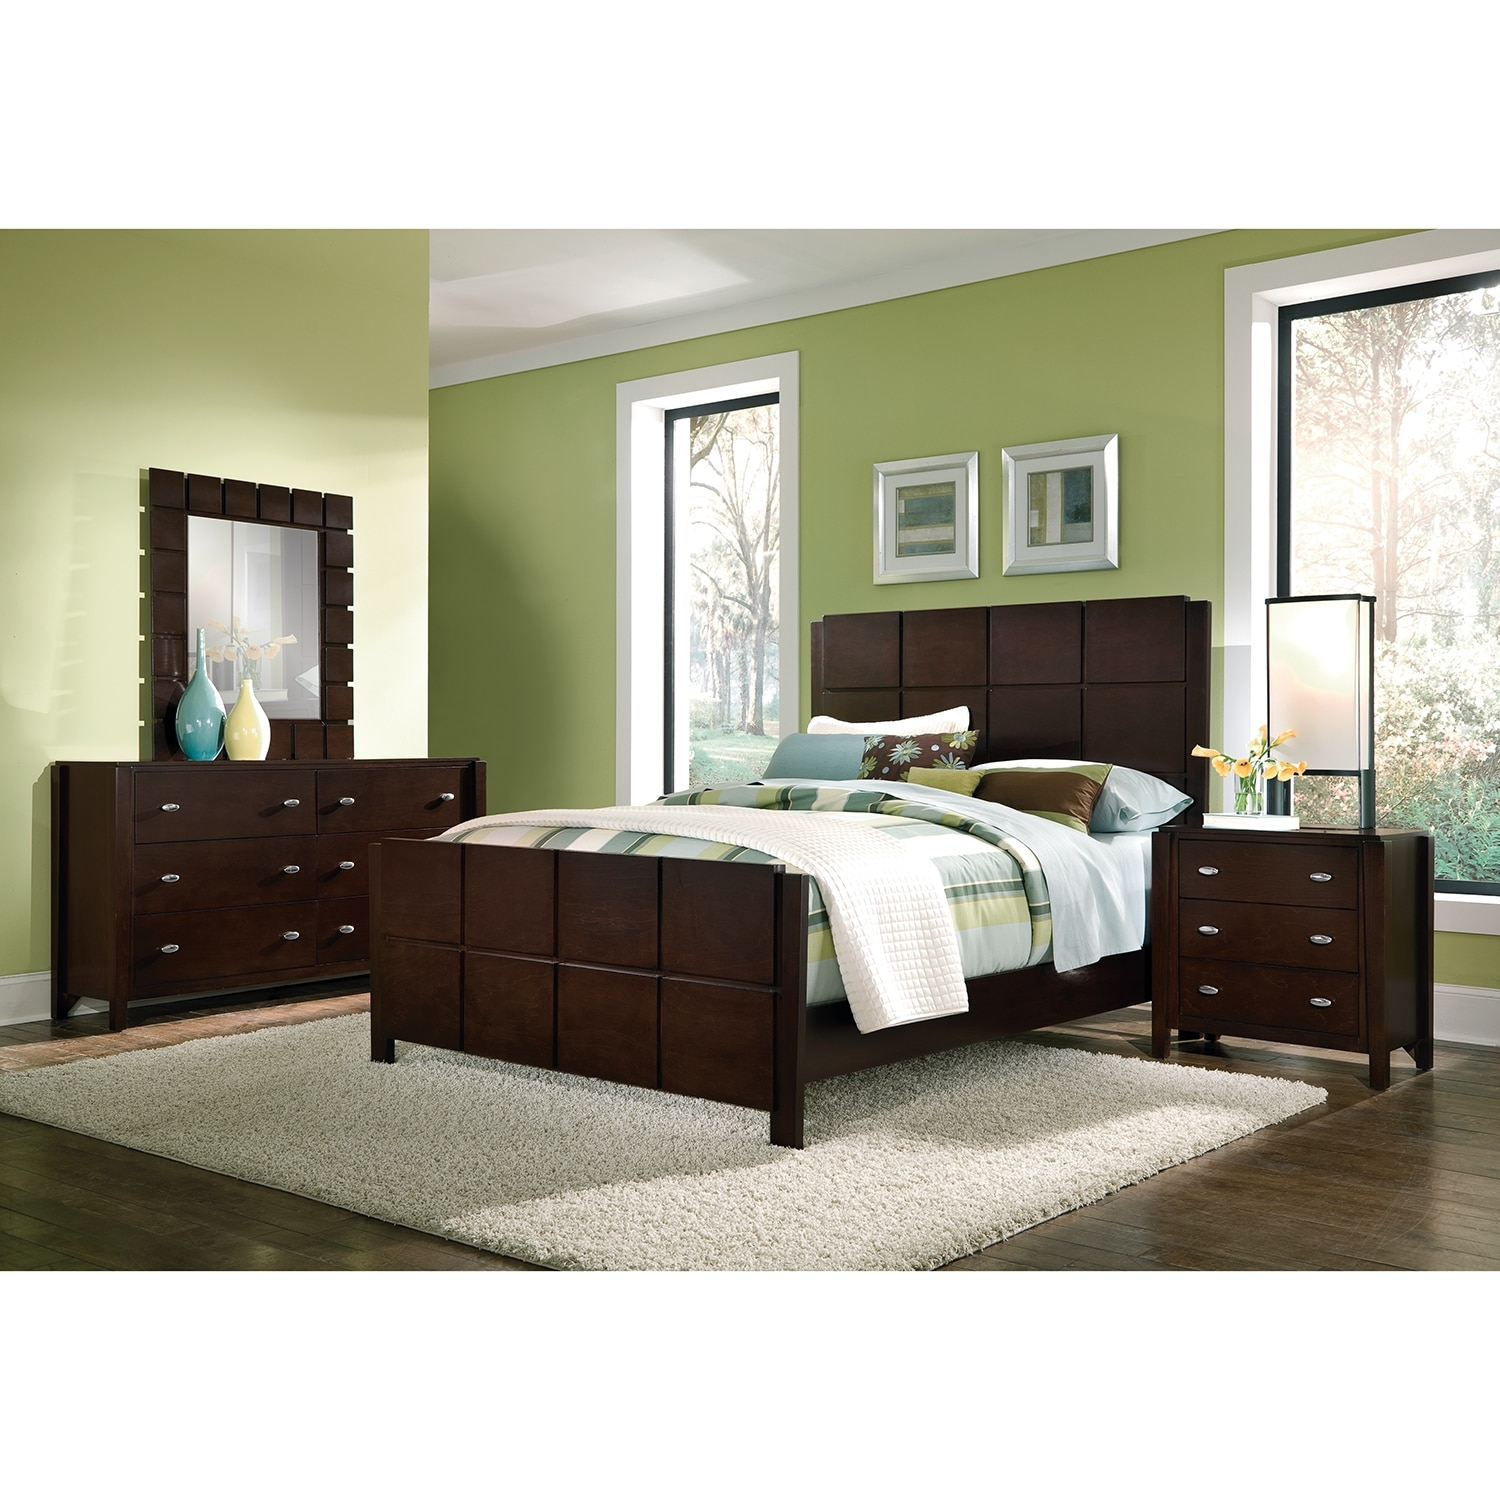 Mosaic 6-Piece Queen Bedroom Set - Dark Brown